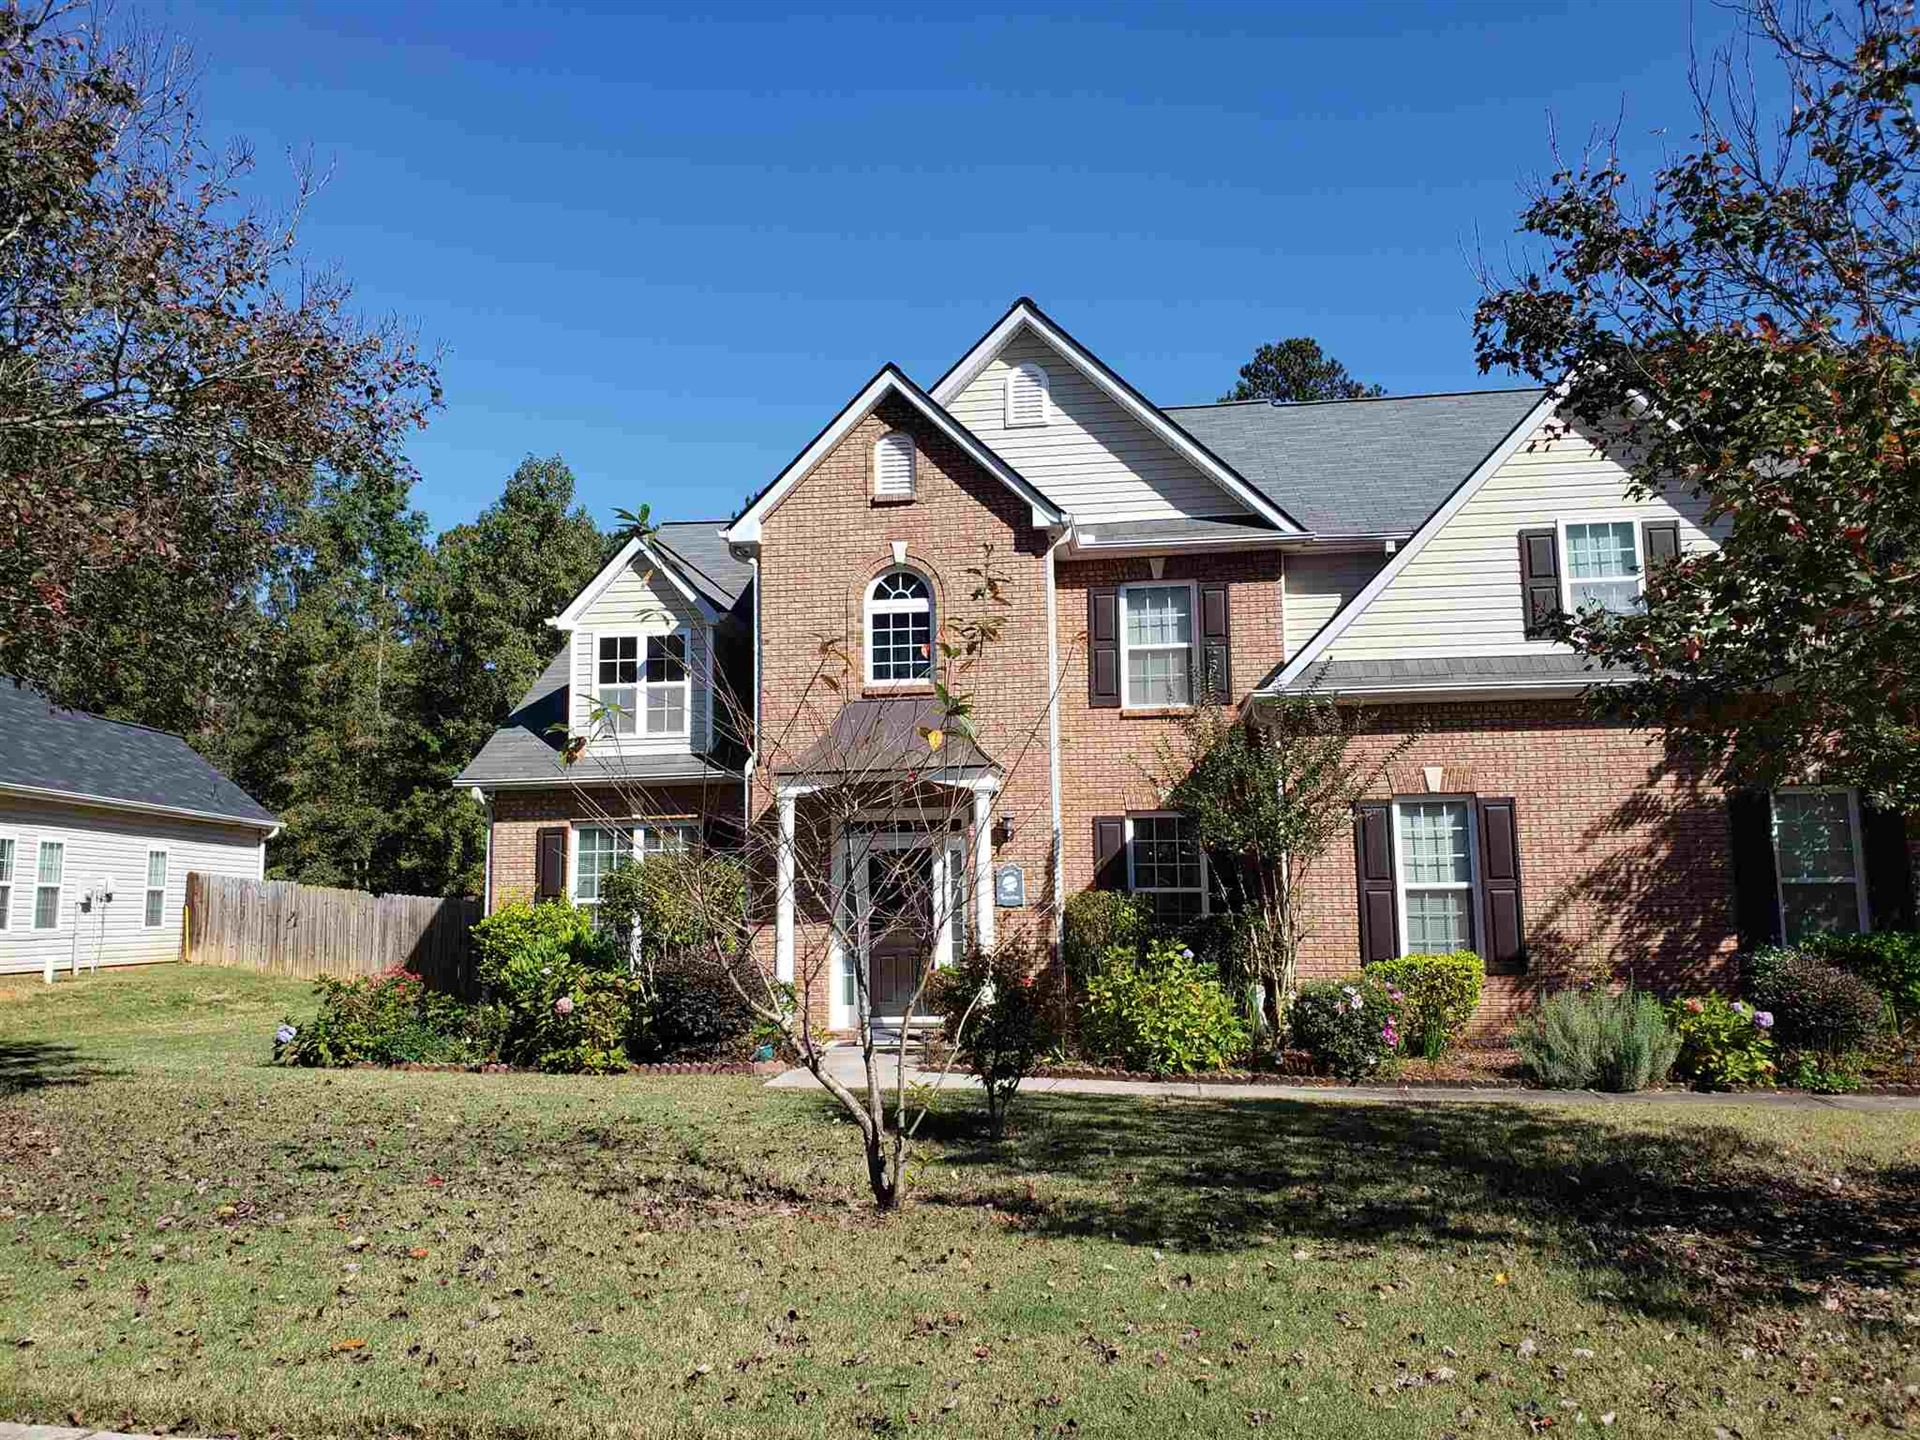 4937 Brown Leaf, Powder Springs, GA 30127 - MLS#: 8875683